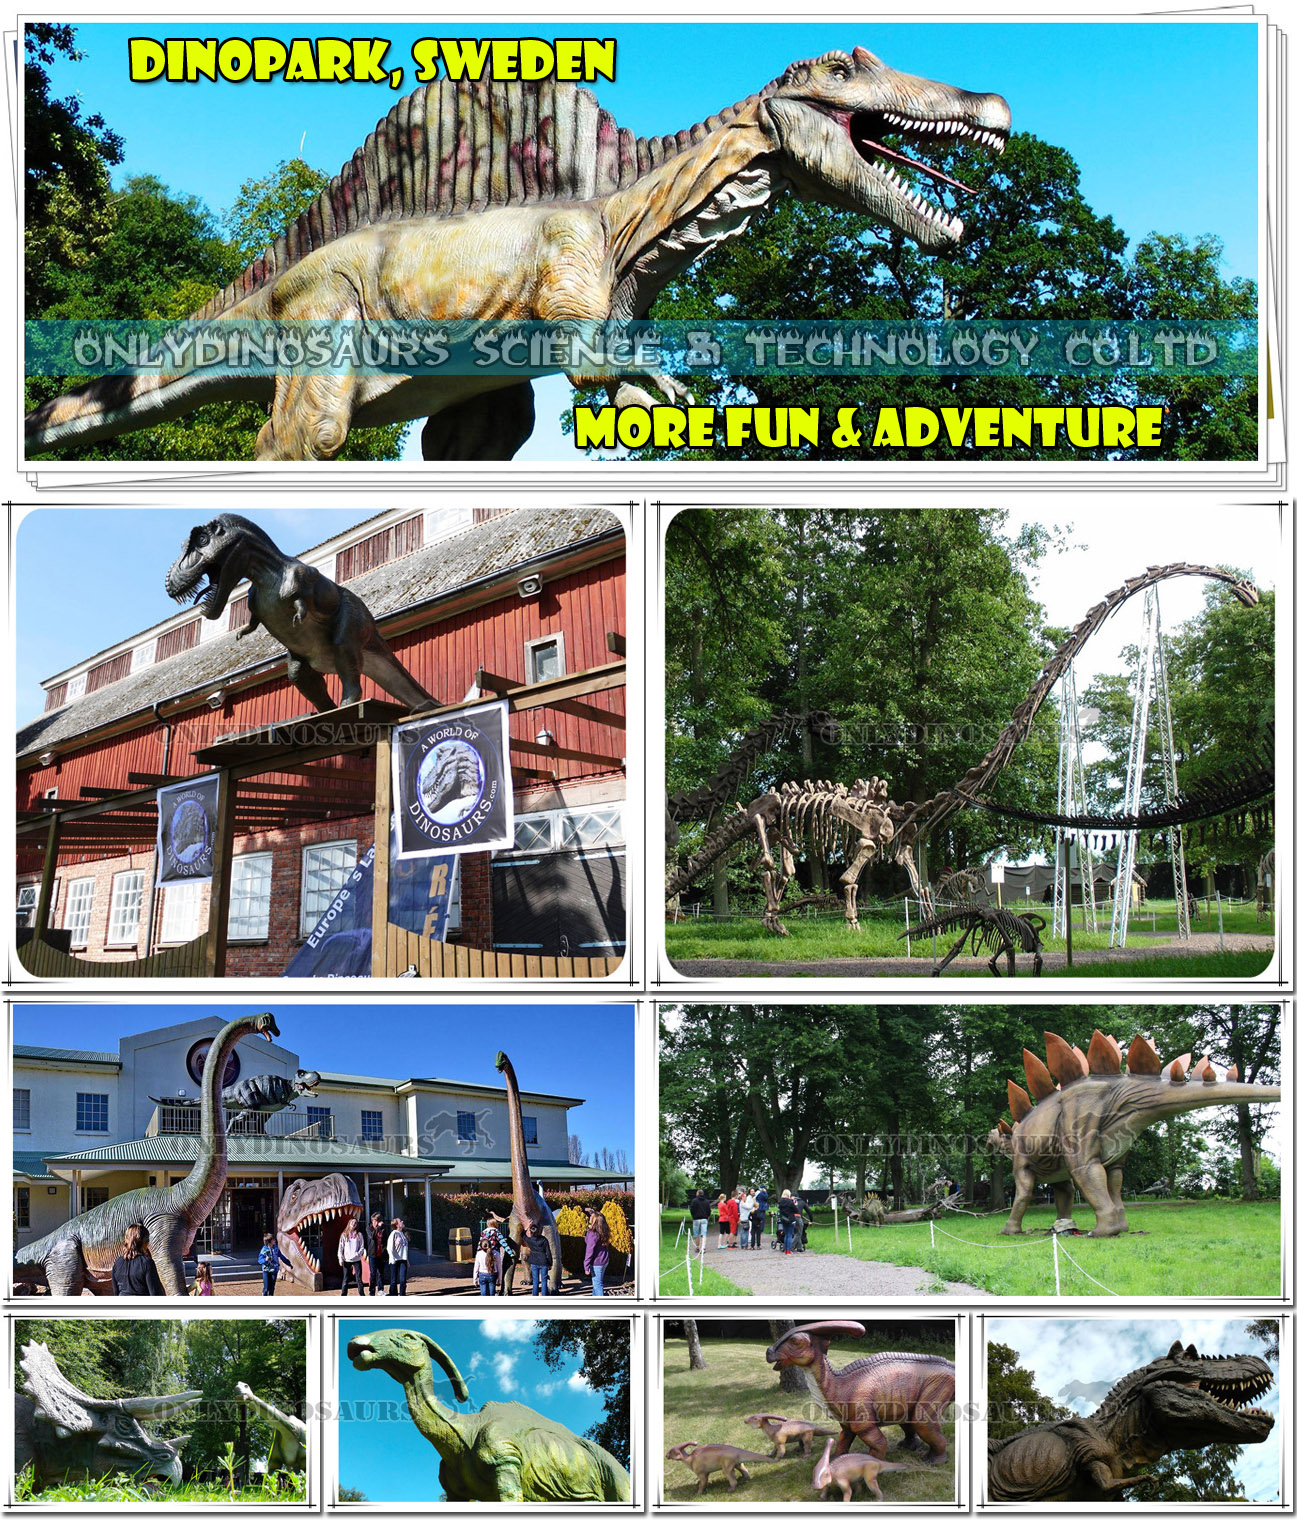 Dinopark in Sweden